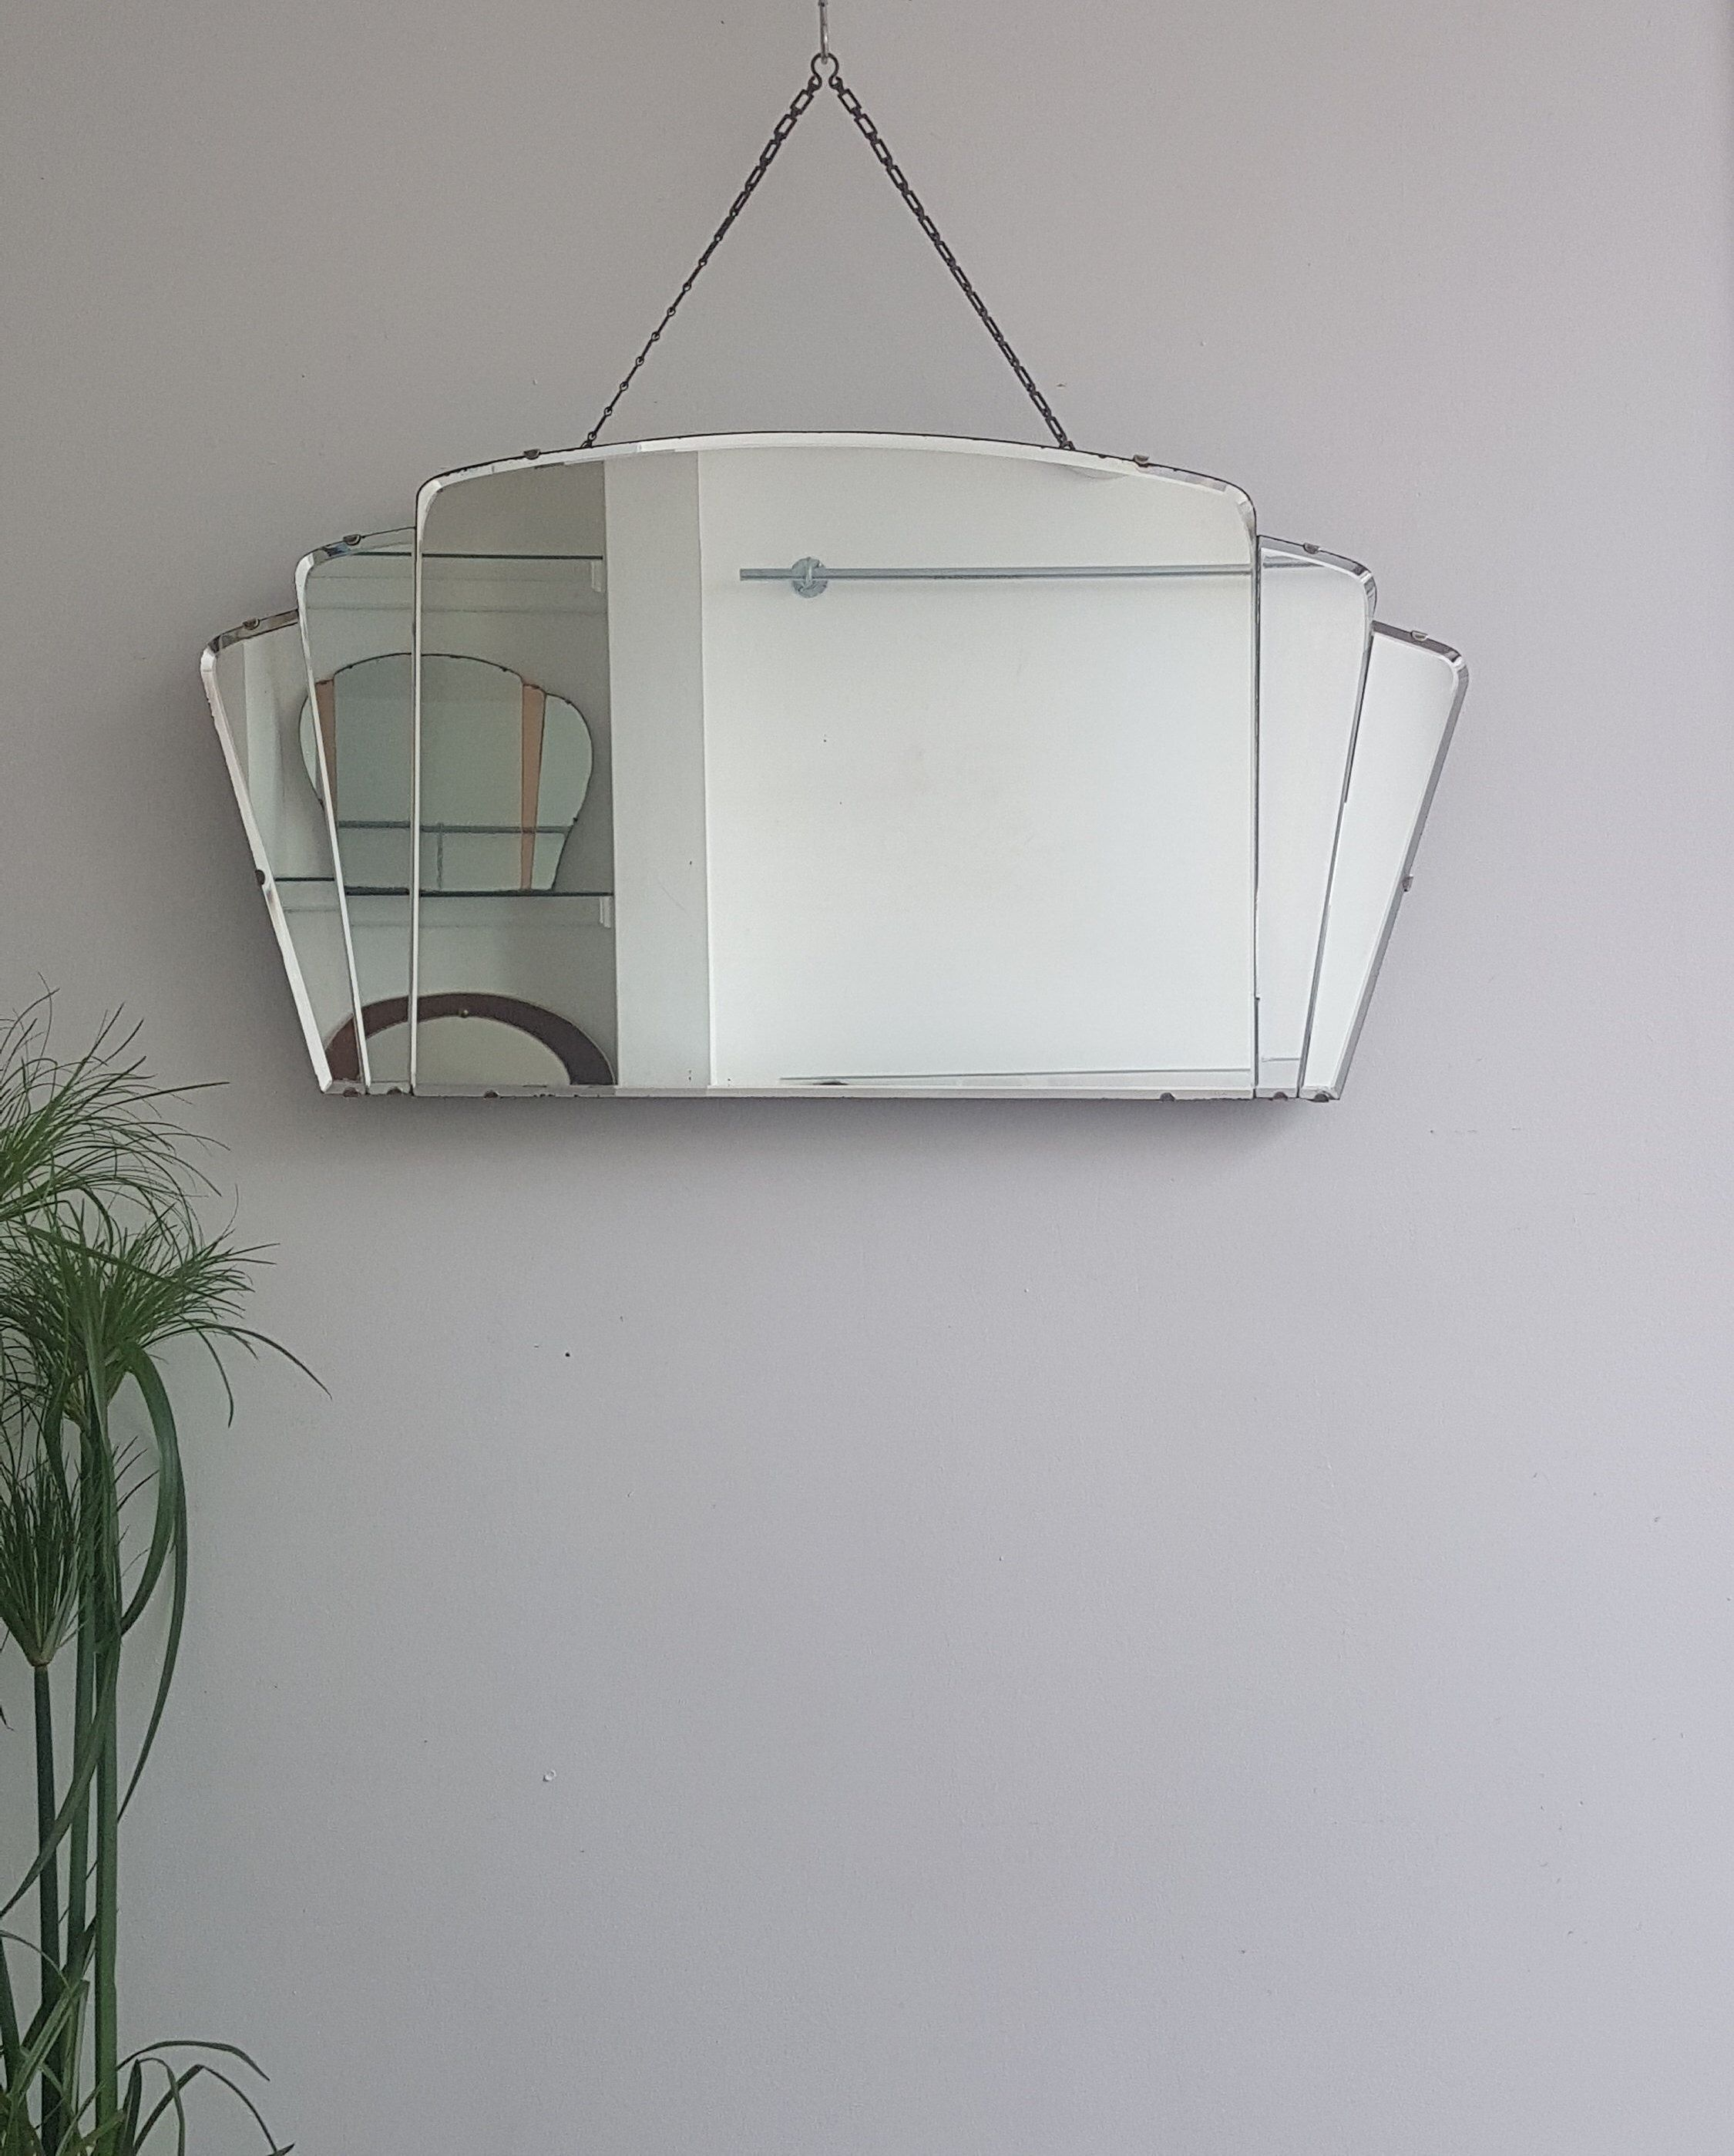 Extra wide art deco fan mirror large mirror with separate glass panels curved bevelled mirror panels